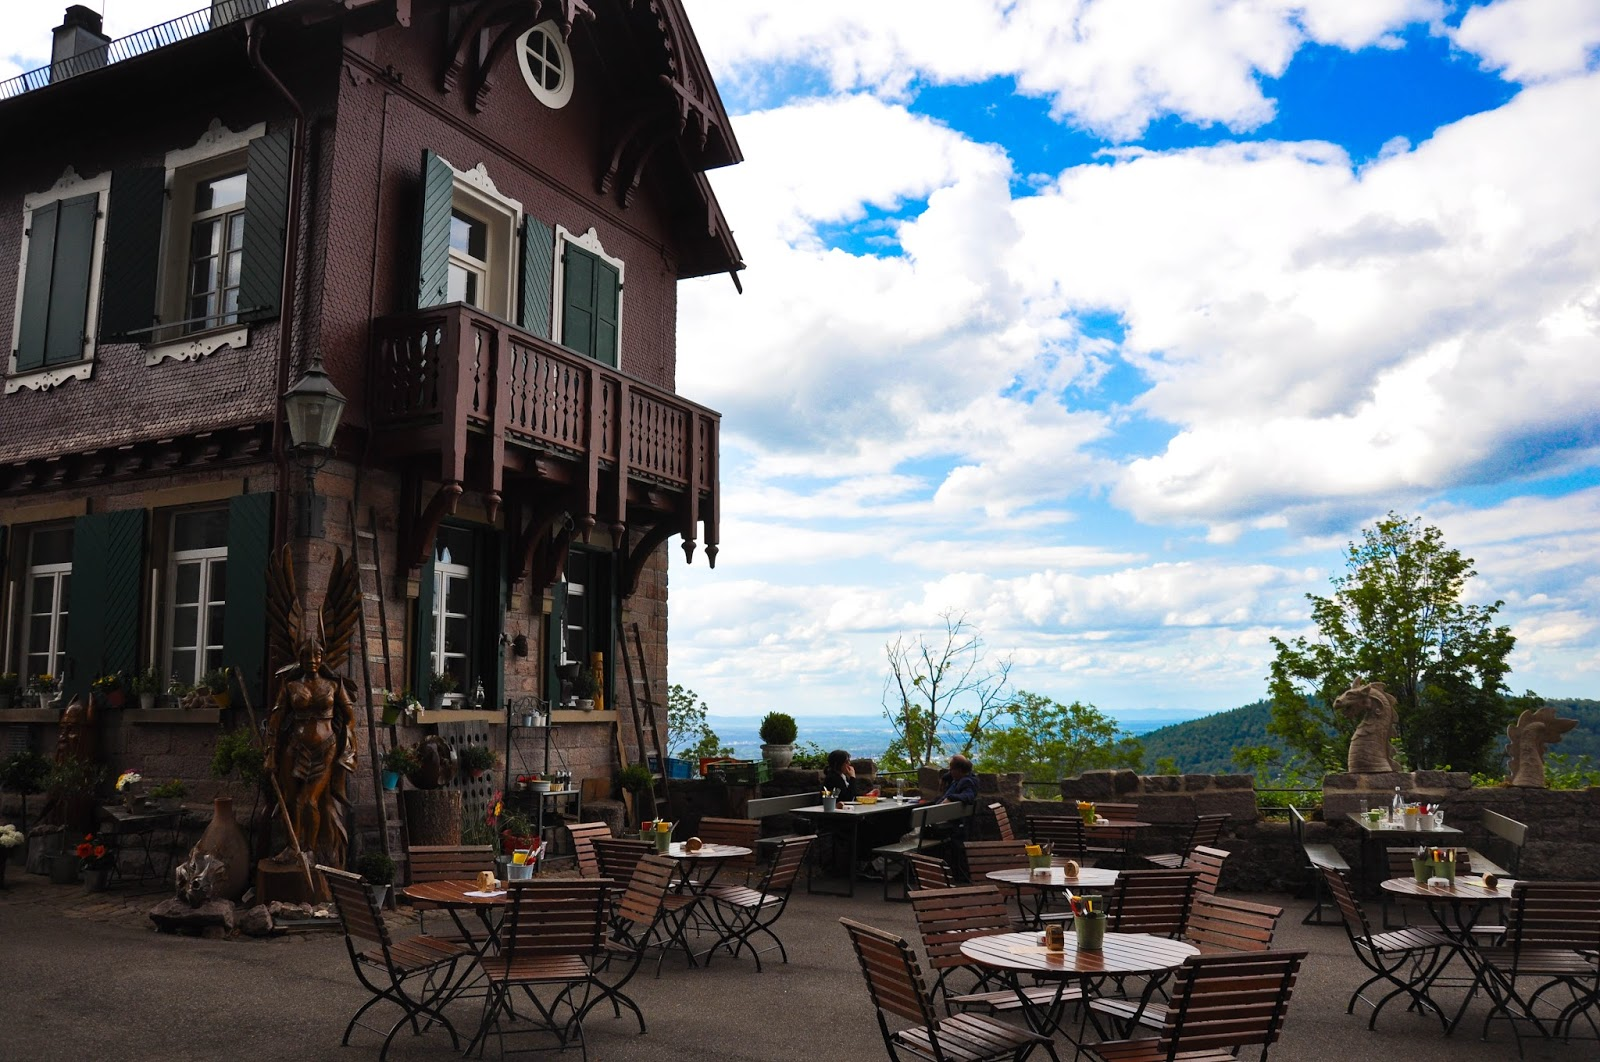 The outside seating area of the restaurant in the Yburg Castle, Yburg, Germany